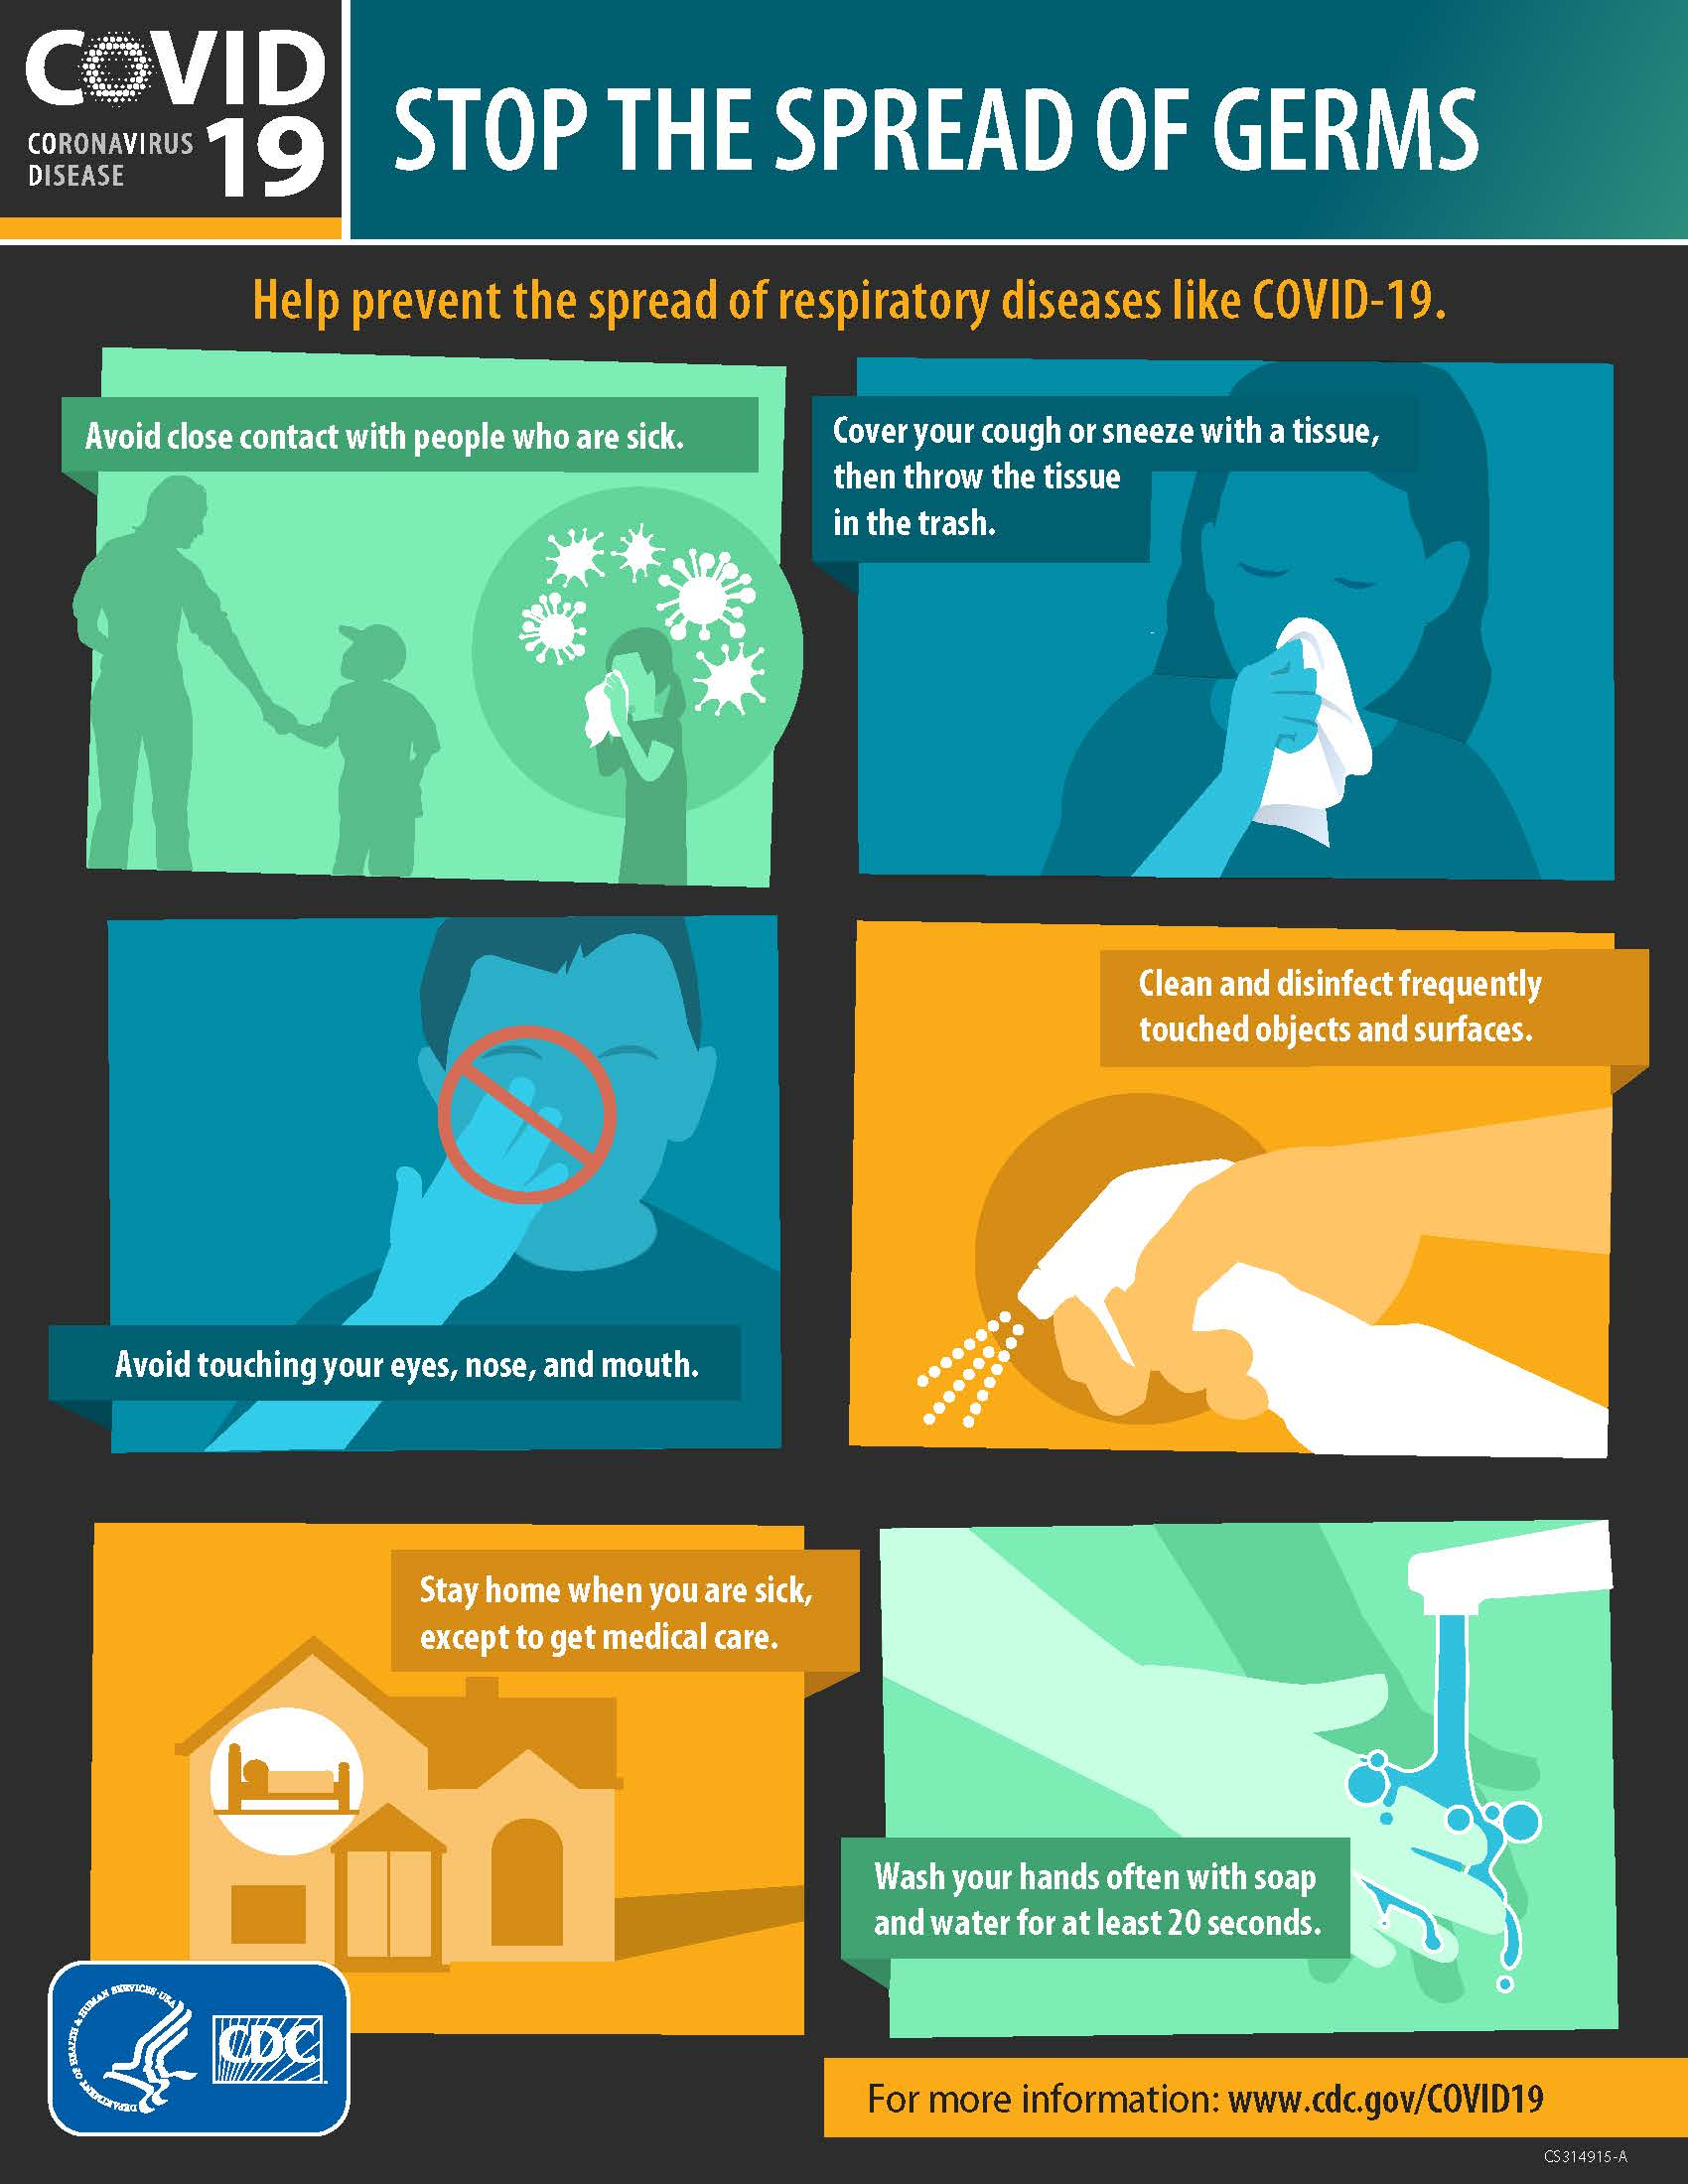 Image - CDC Stop the Spread of Germs